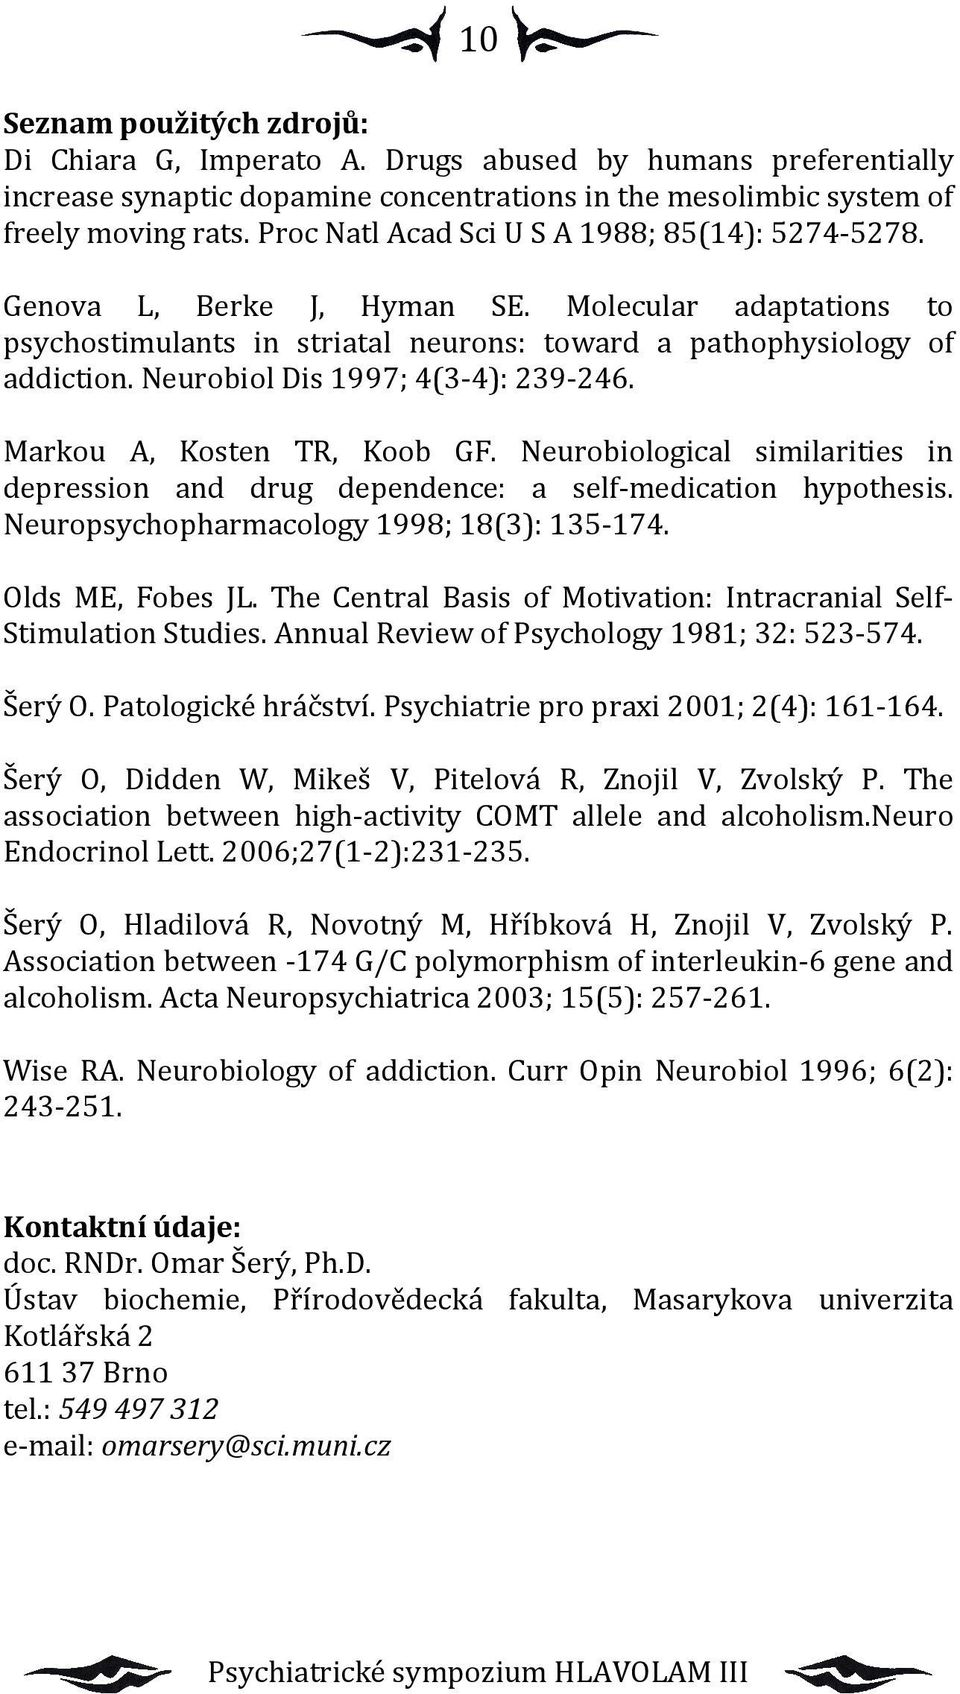 Neurobiol Dis 1997; 4(3-4): 239-246. Markou A, Kosten TR, Koob GF. Neurobiological similarities in depression and drug dependence: a self-medication hypothesis.